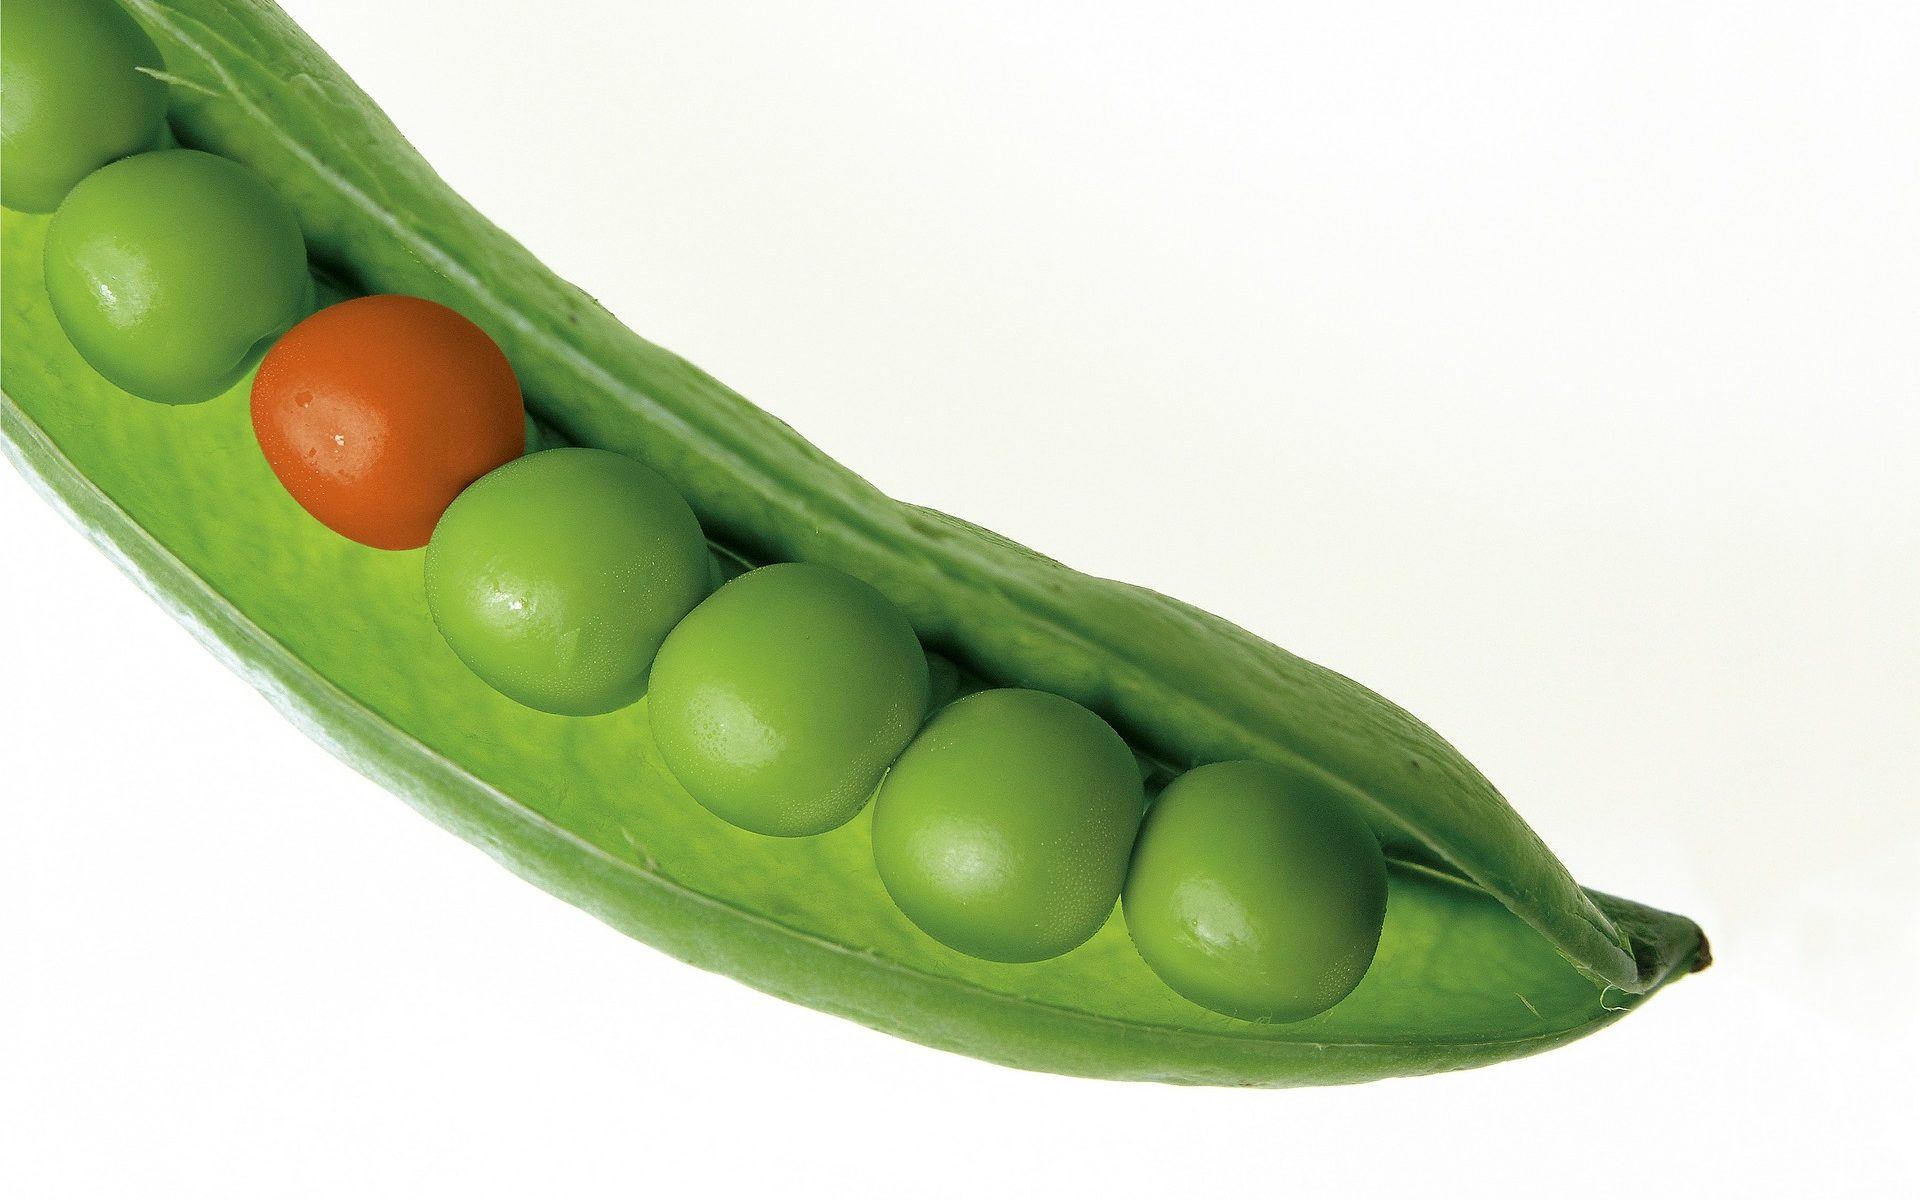 Pea pod with one red pea and the rest green. Why the red pea?